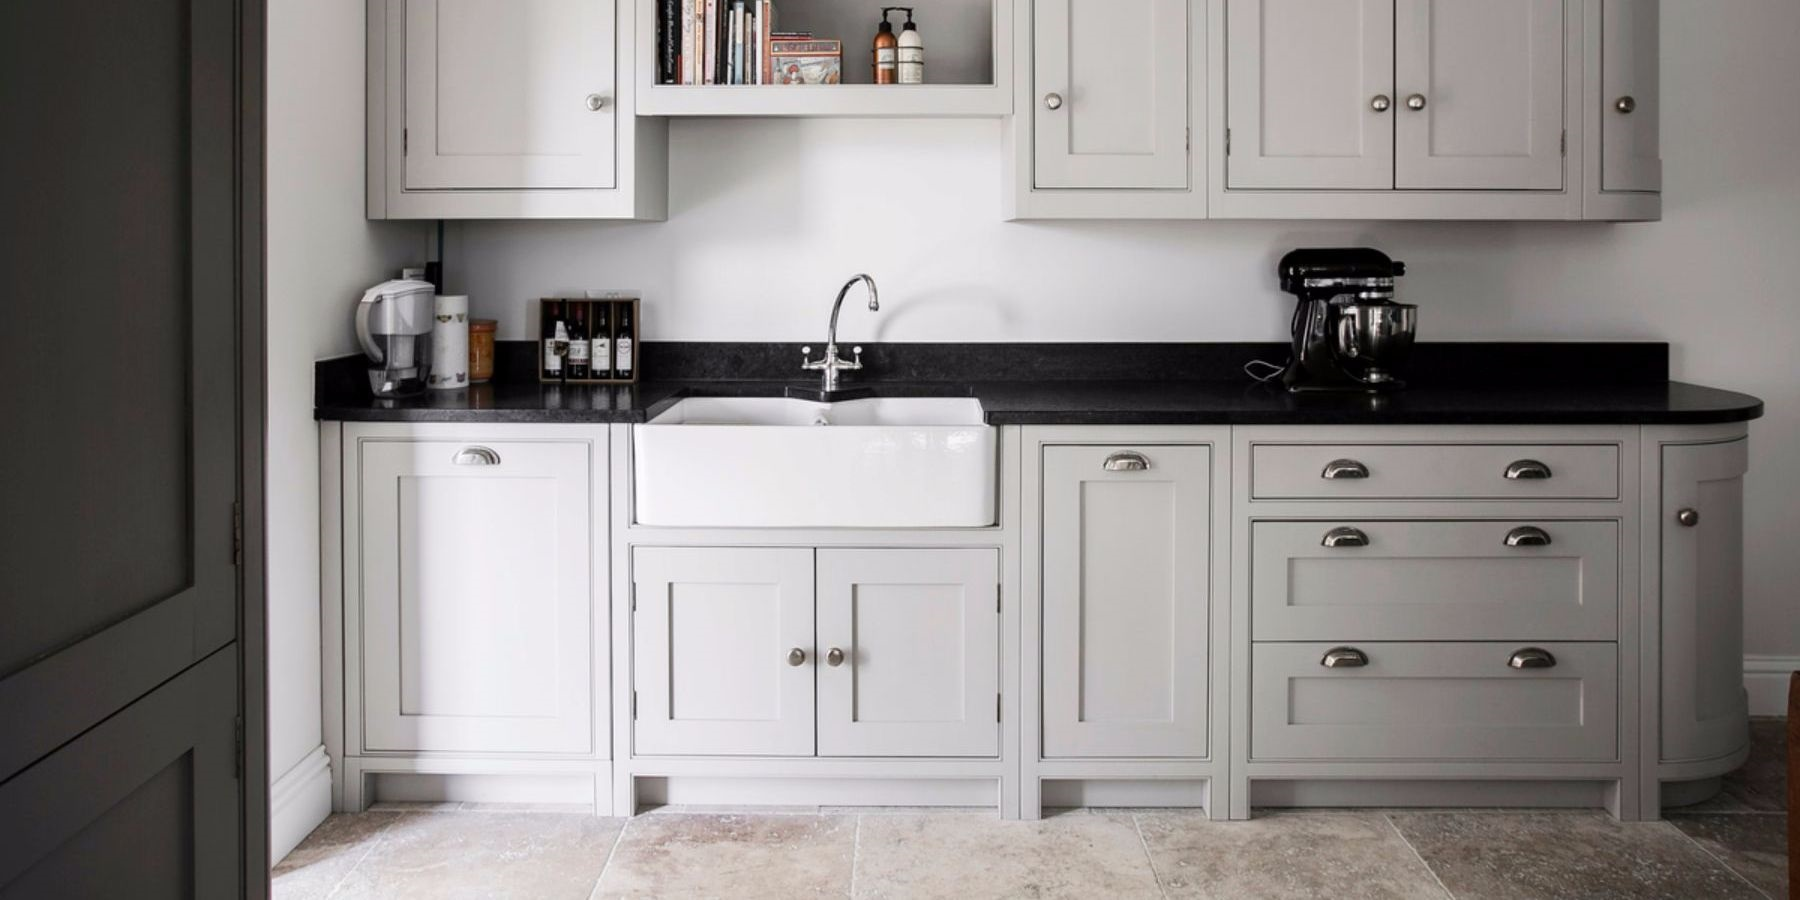 Freestanding Style Shaker Kitchen - Burlanes handmade freestanding style Wellsdown country kitchen.